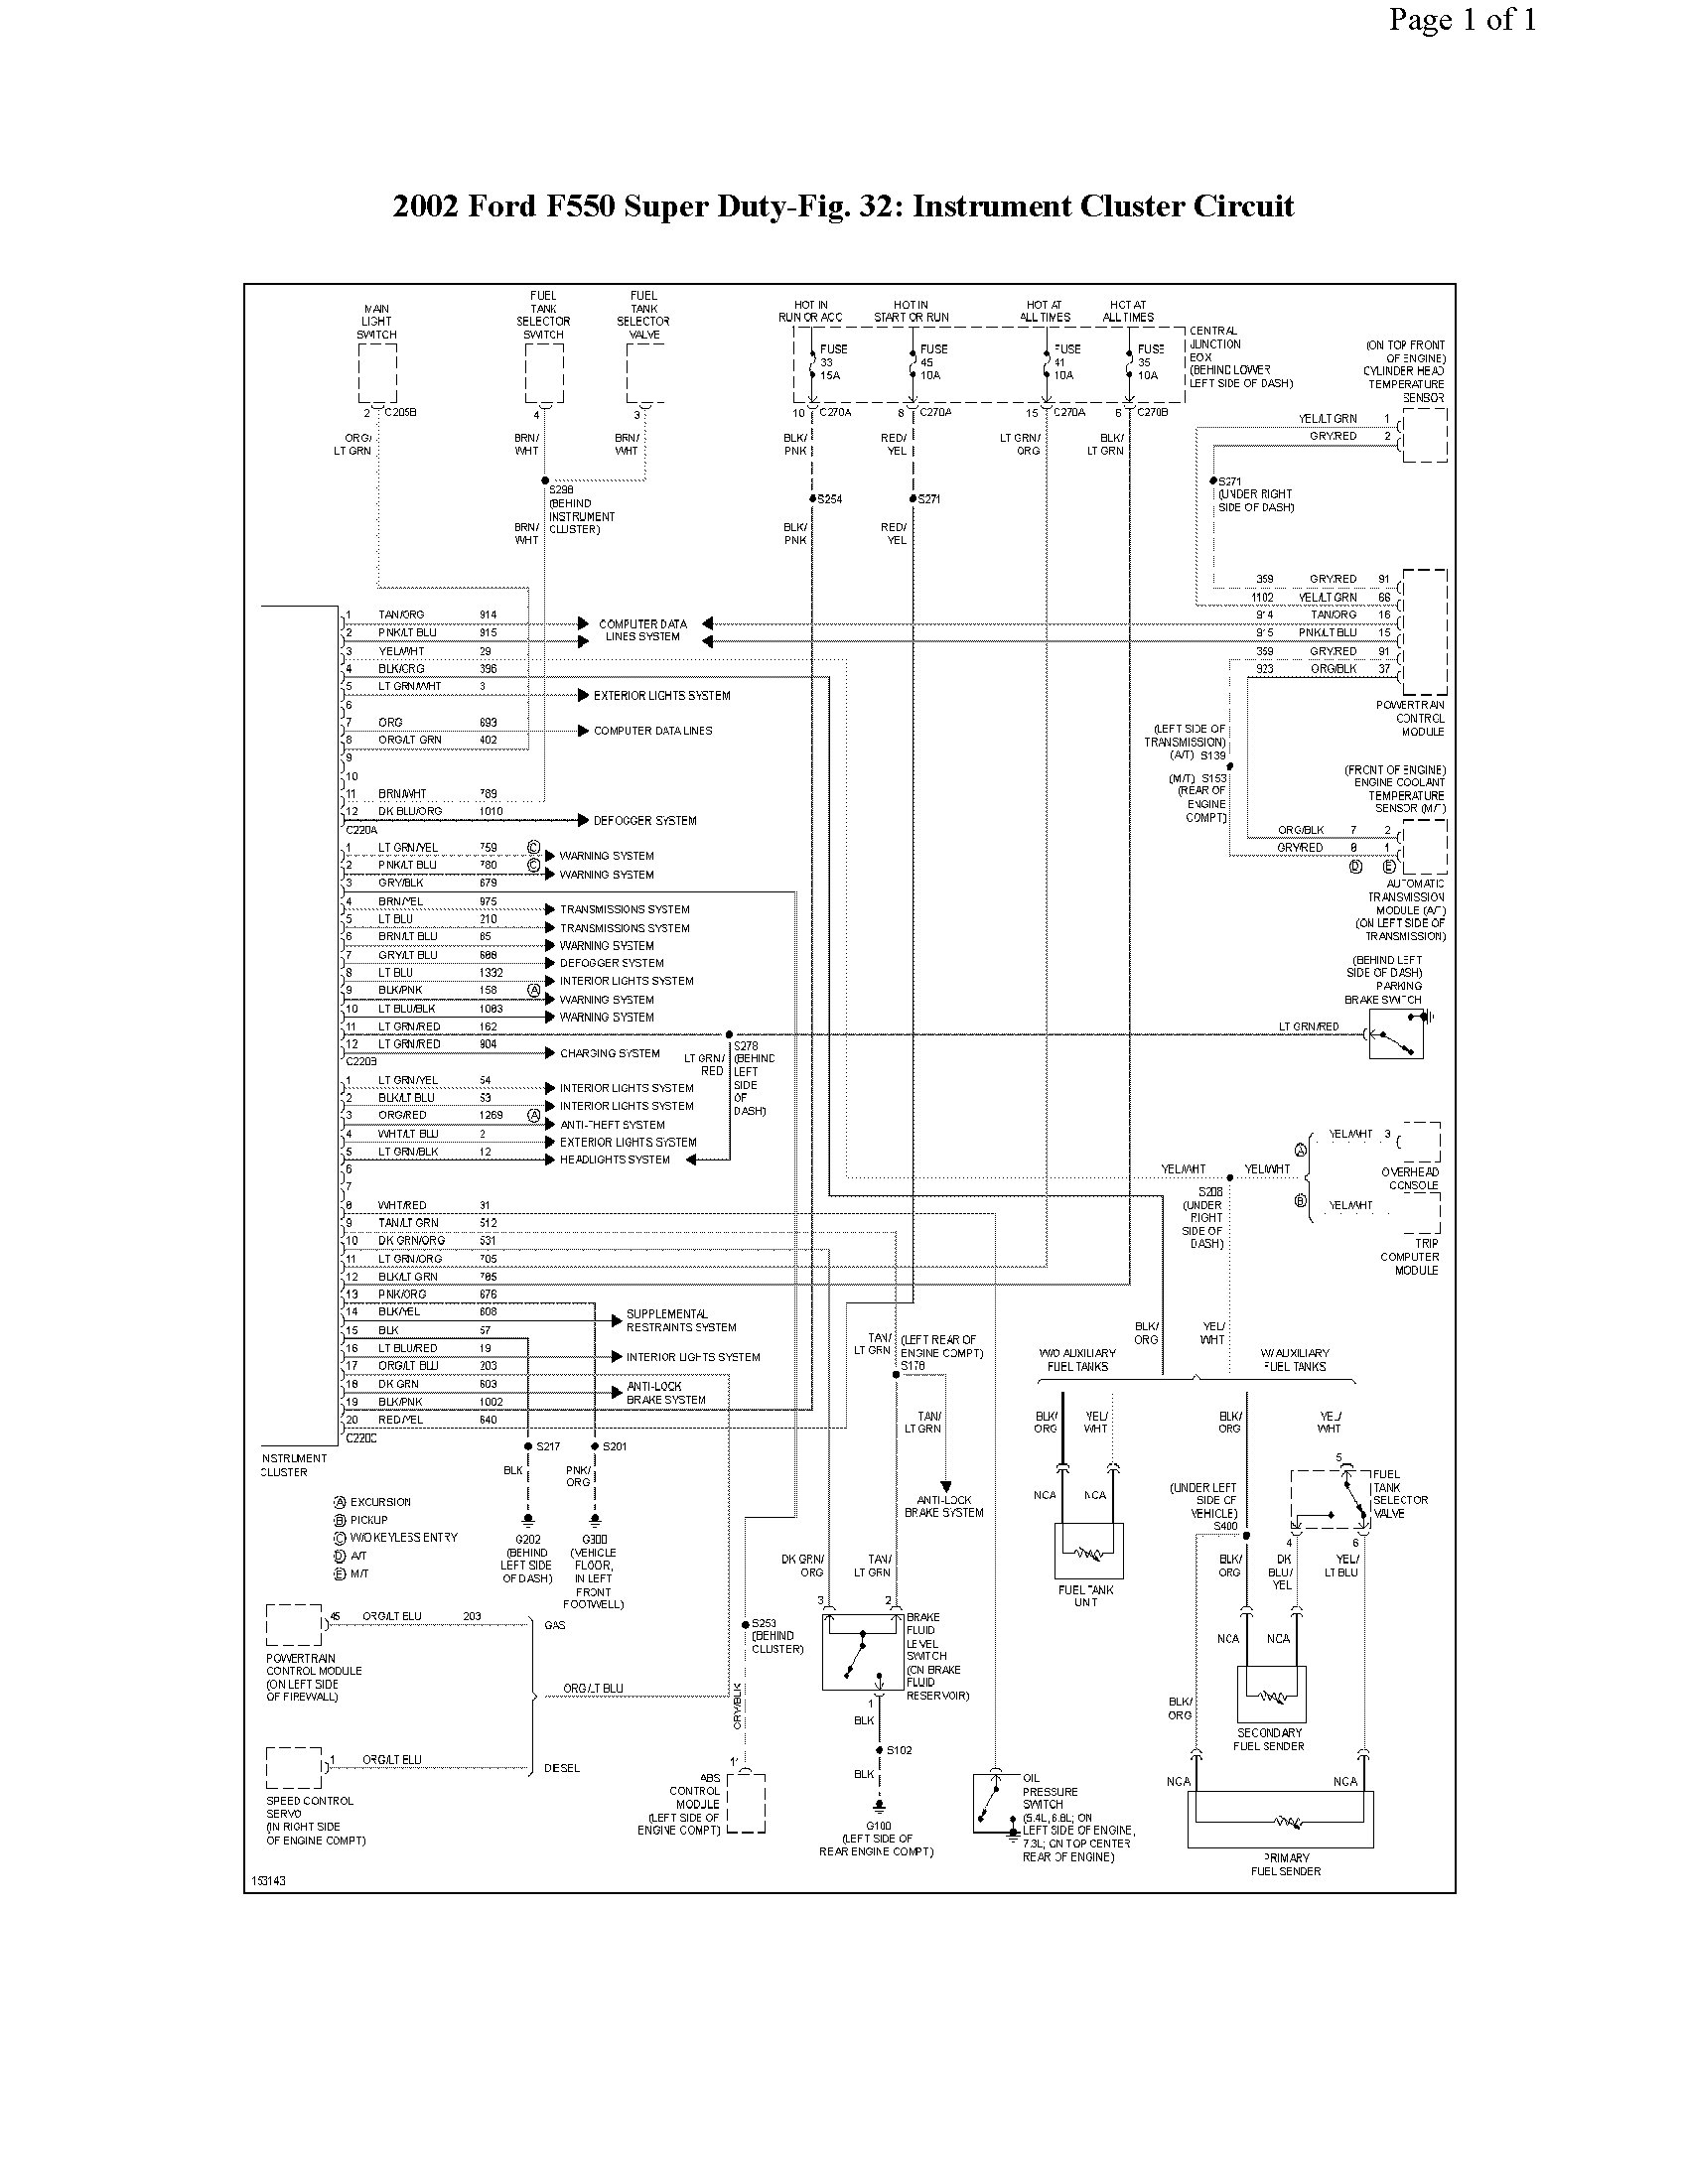 2010 ford f550 super duty fuse box diagram  ford  auto